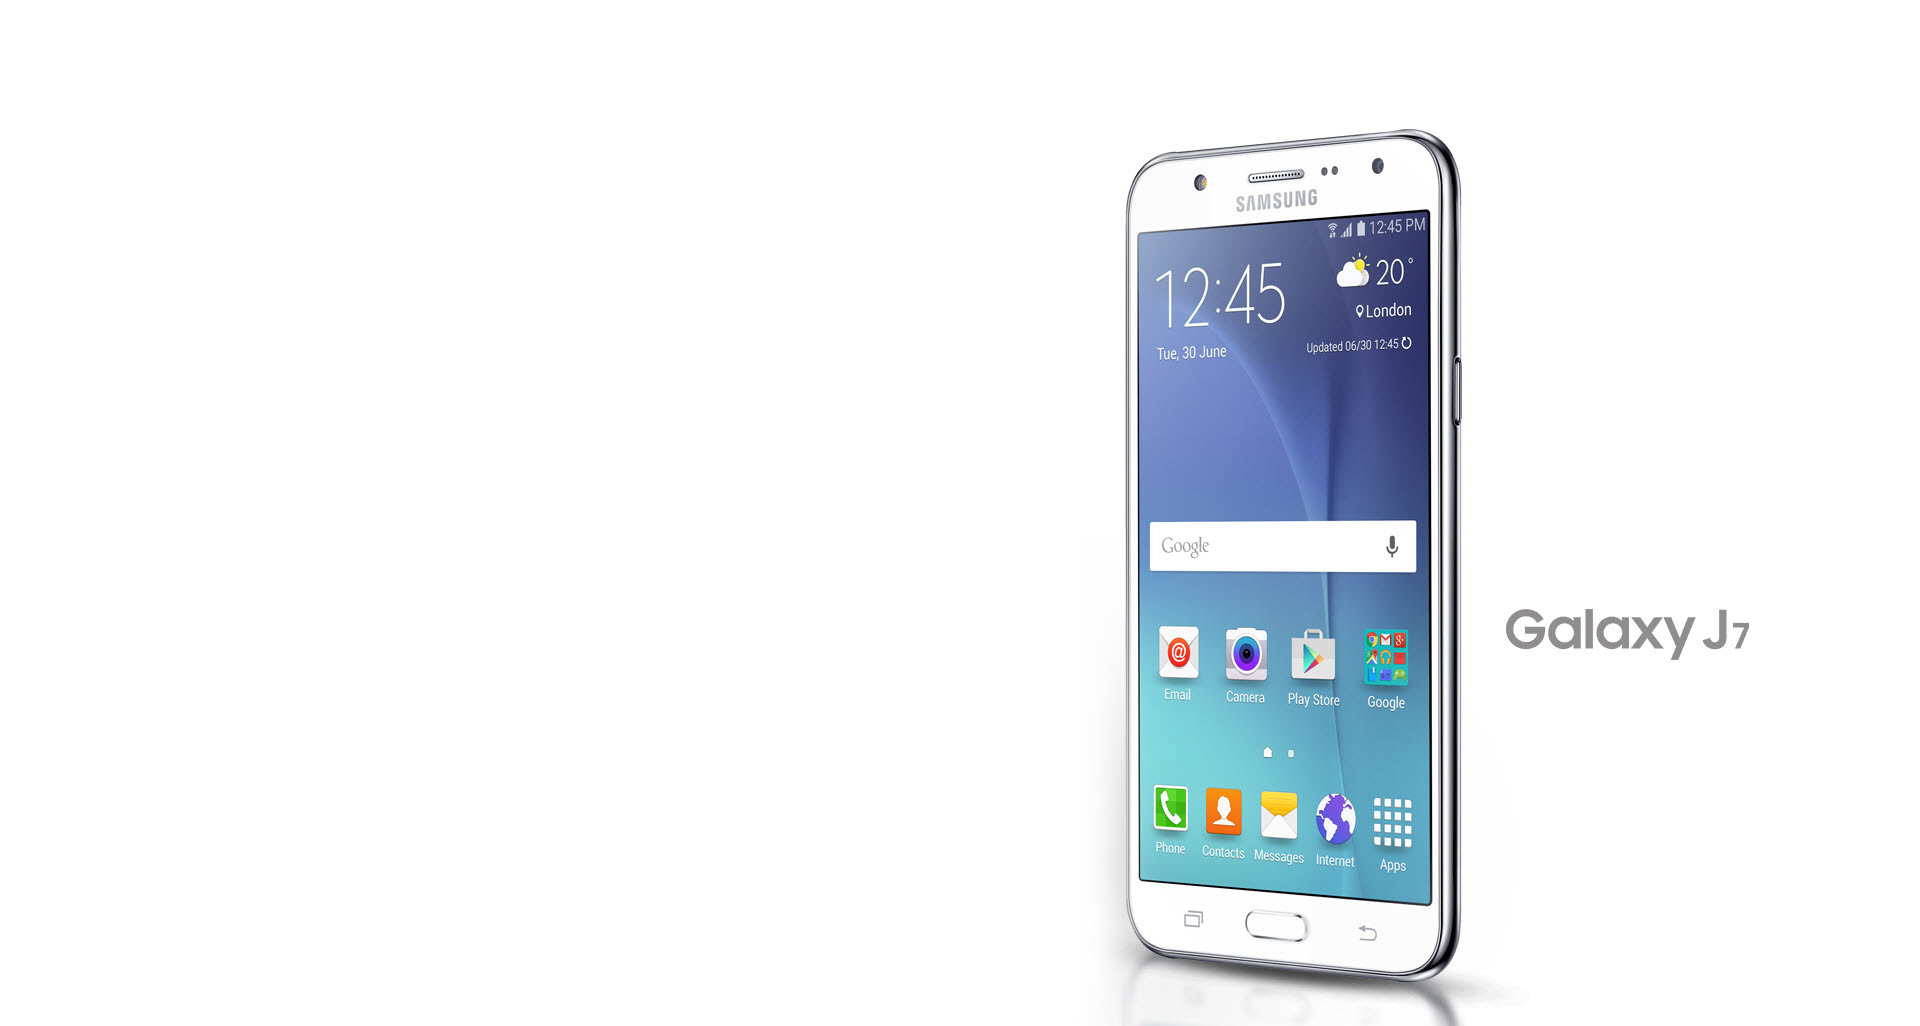 Update Galaxy J7 J-700F to Stock Android 5 1 1 Lollipop - Android